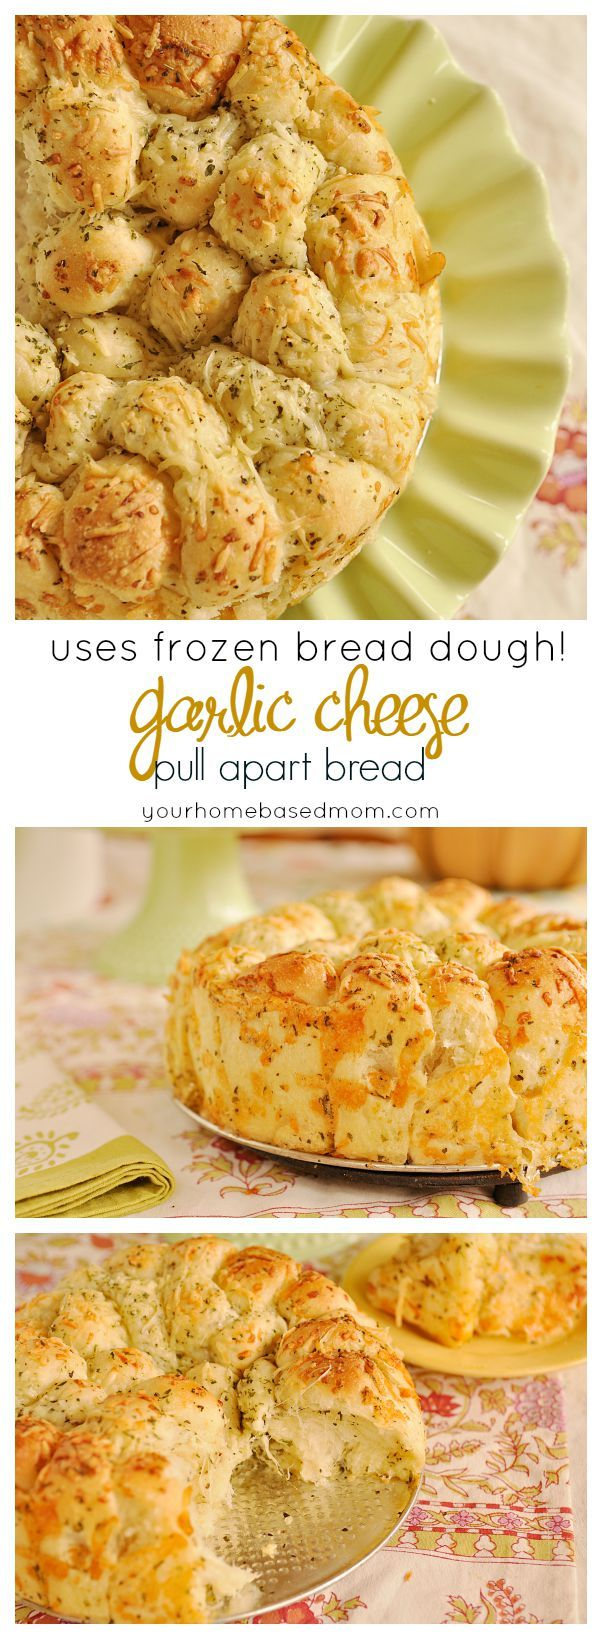 Garlic Cheese Pull Apart Bread at it's finest!  It uses frozen bread dough!